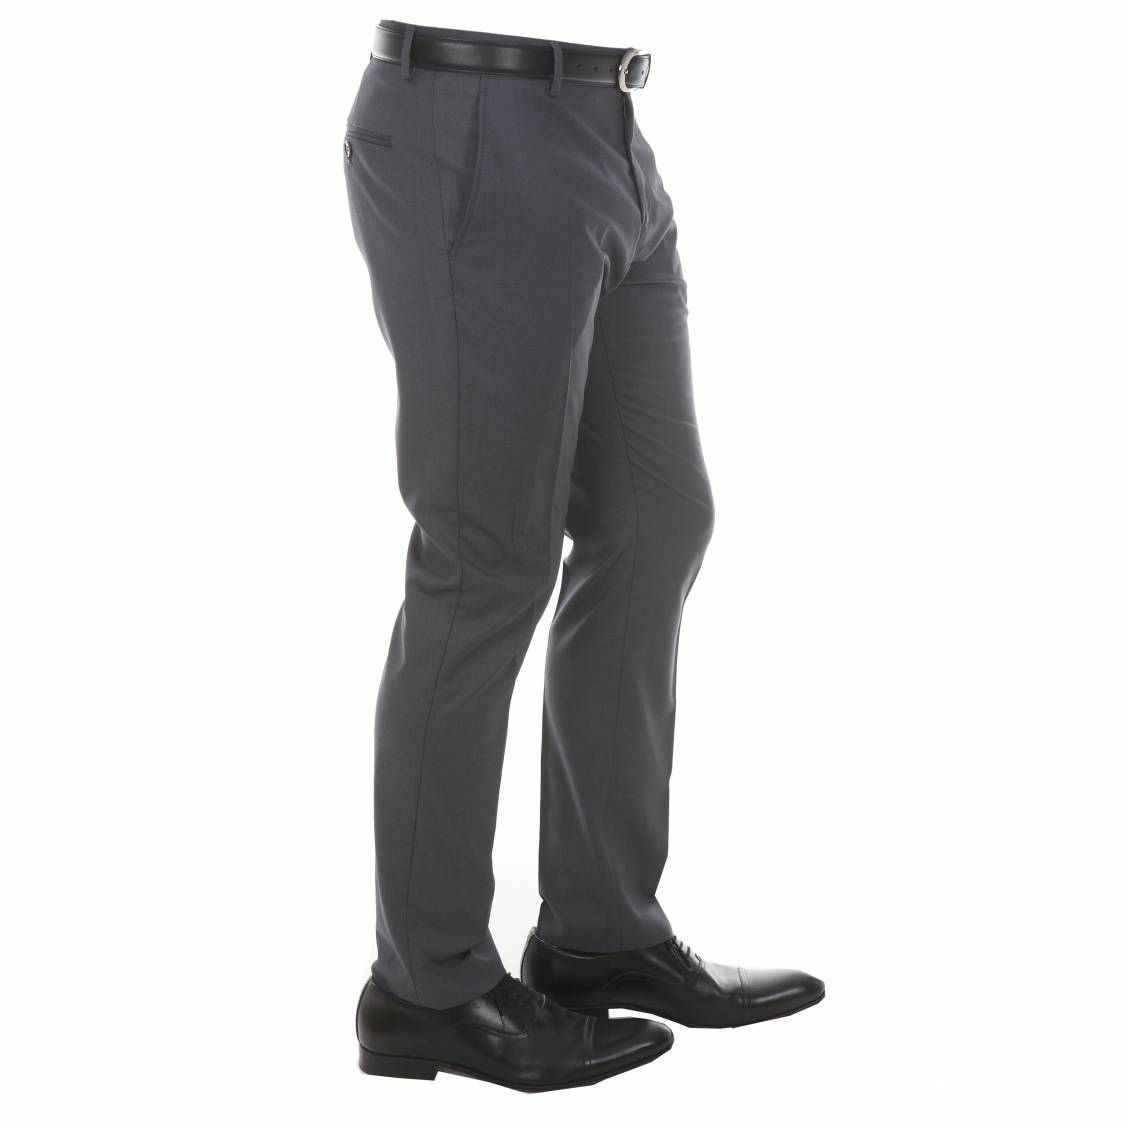 Pantalon de costume Selected gris foncé